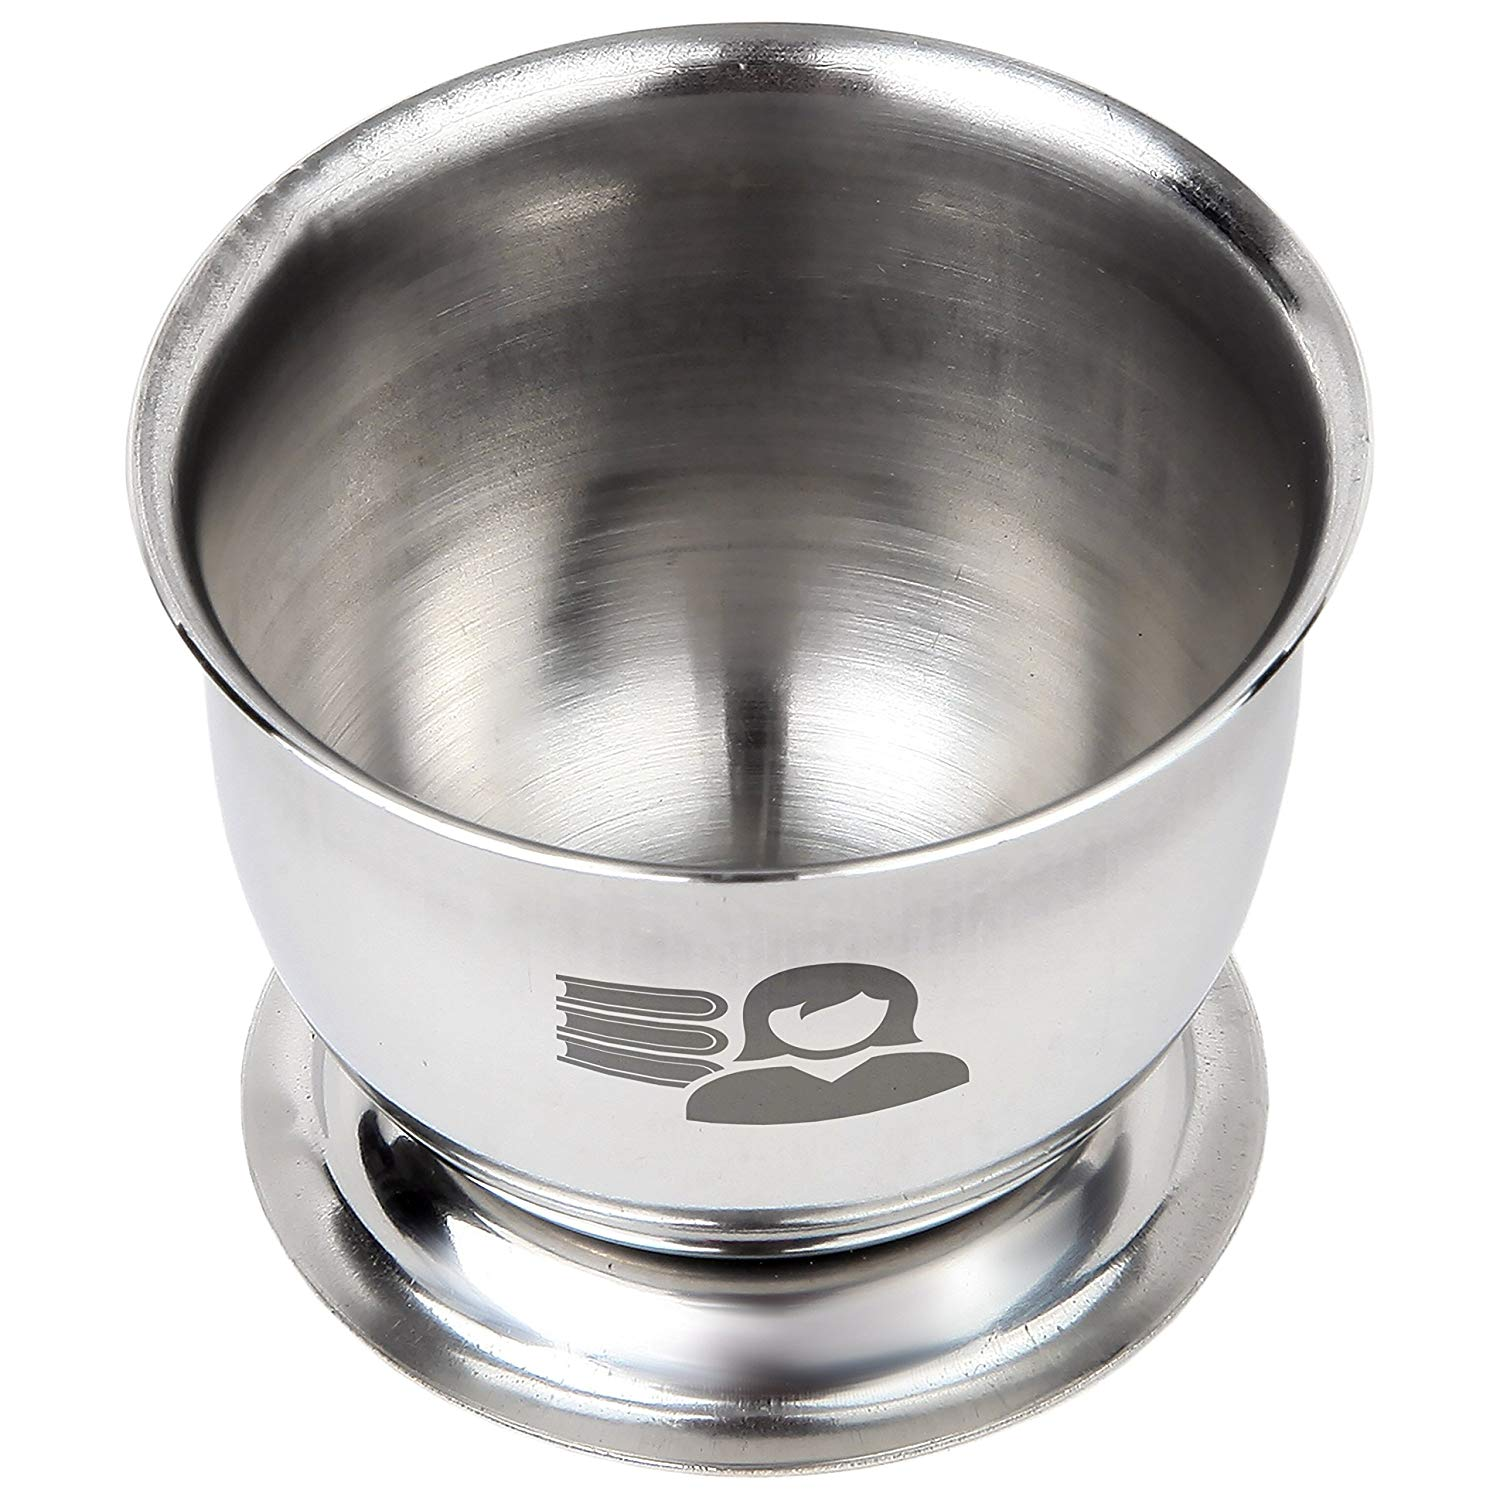 Librarian Engraved Stainless Steel Egg Cup